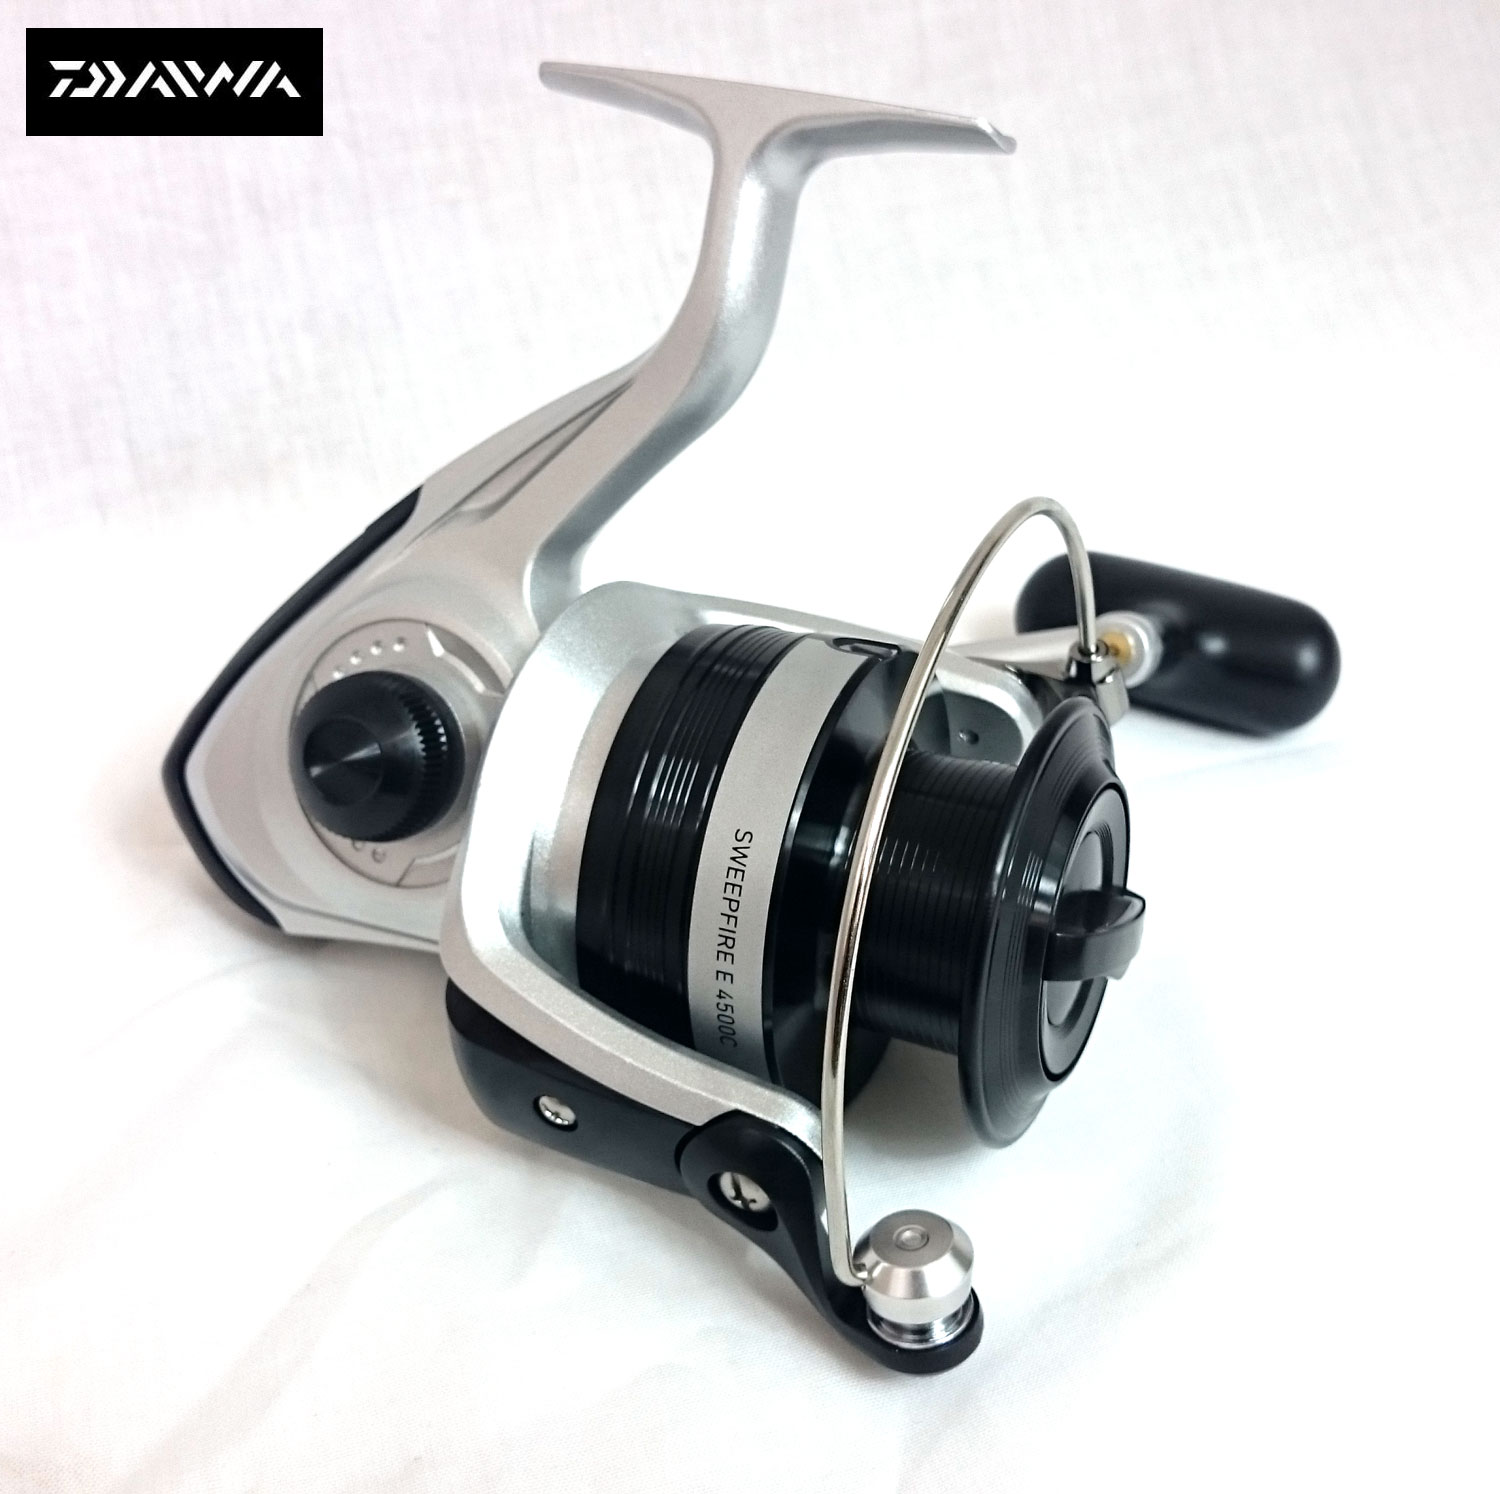 New Daiwa Sweepfire E 4500c Fishing Spinning Reel Model No Swe4500c Rel